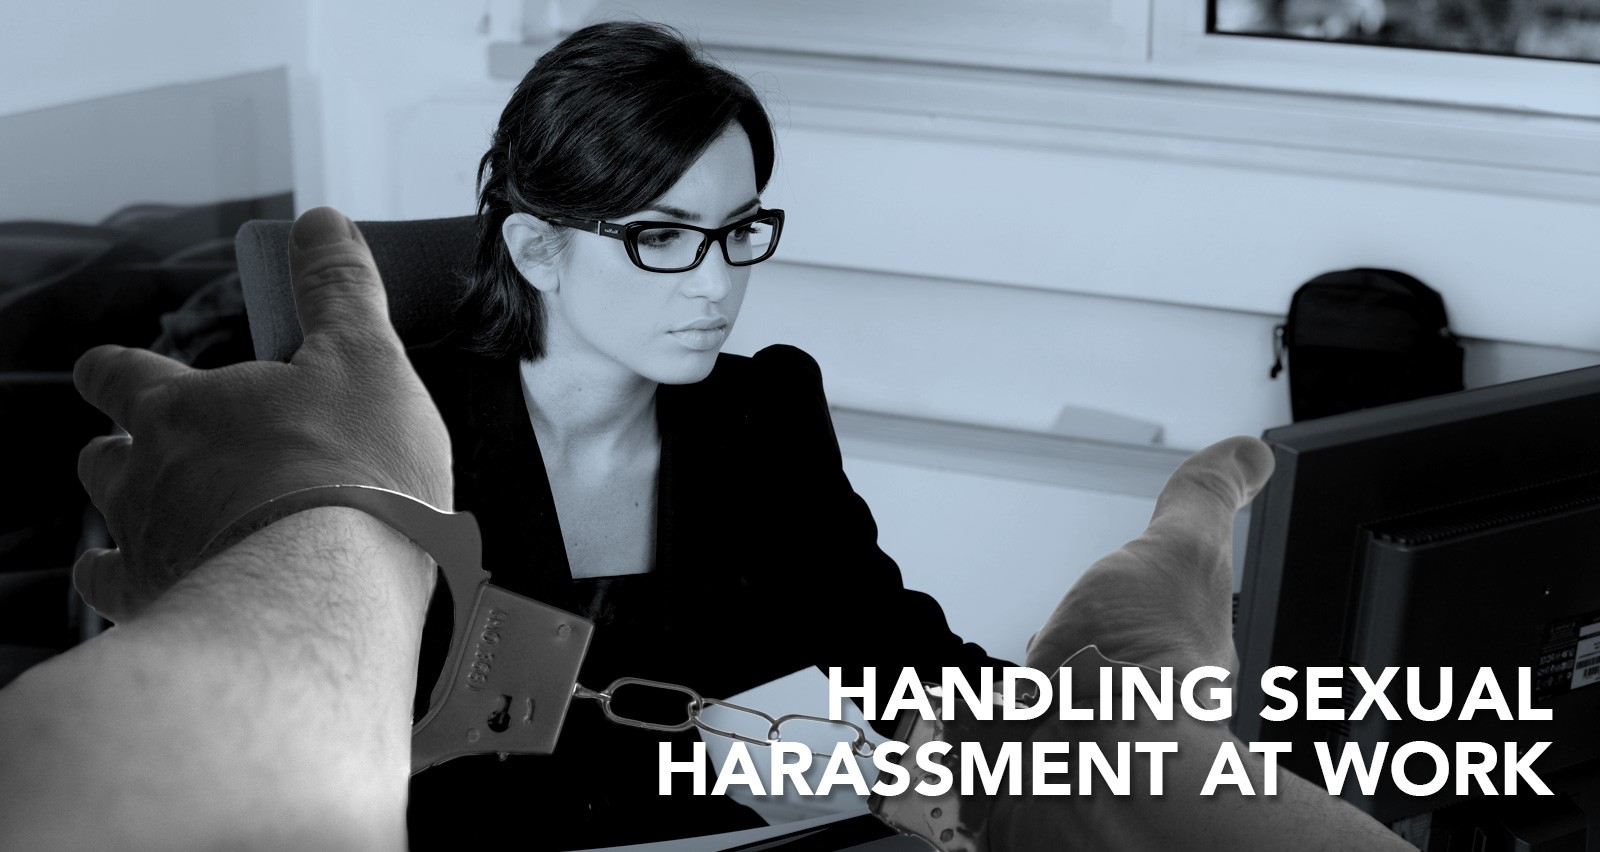 Handling Sexual Harassment at work